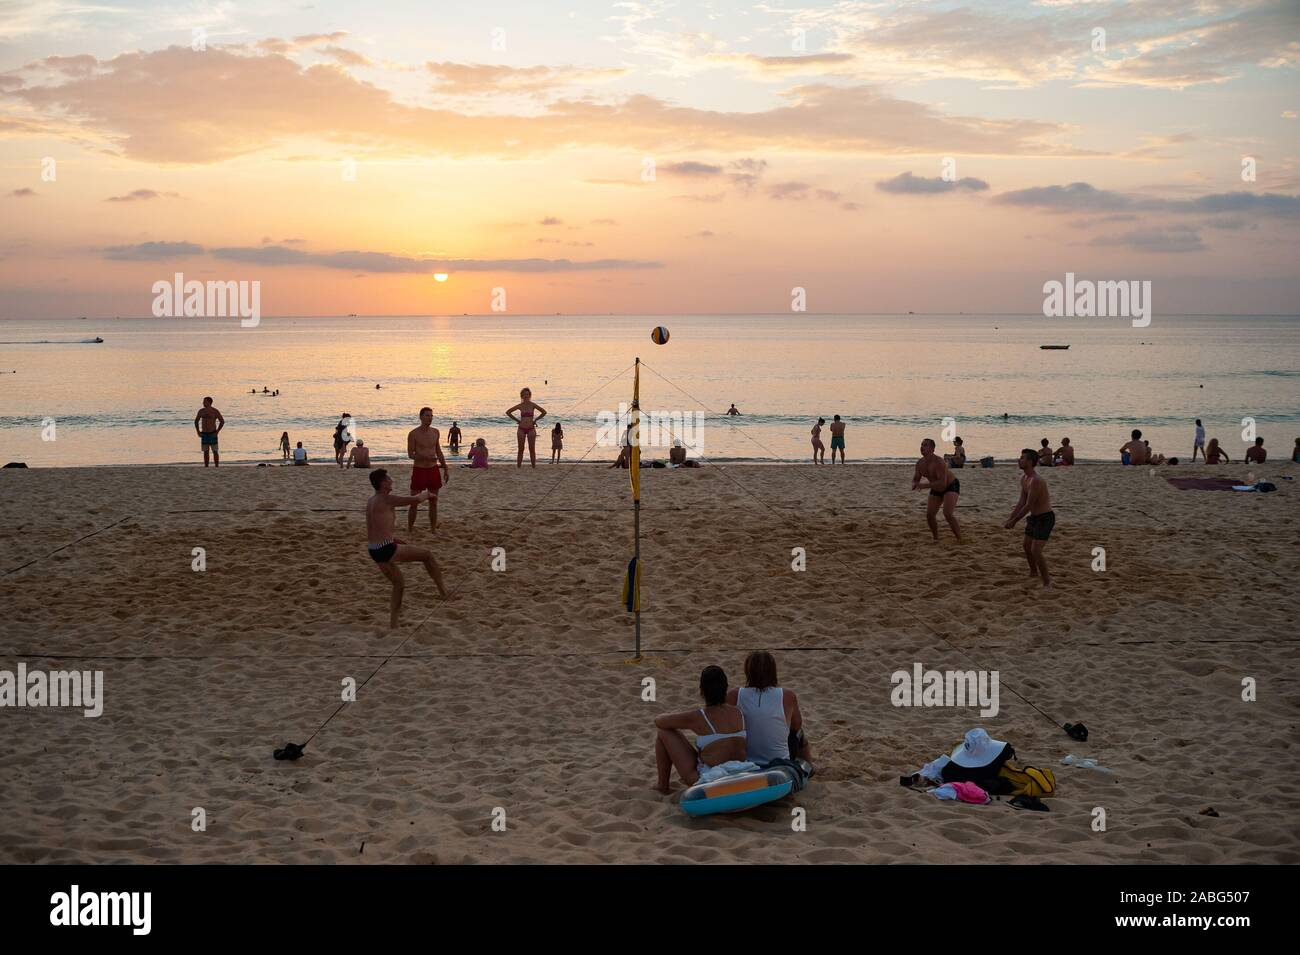 18.11.2019, Phuket, Thailand, Asia - A group of tourists plays volleyball in the sunset on Karon Beach. Stock Photo